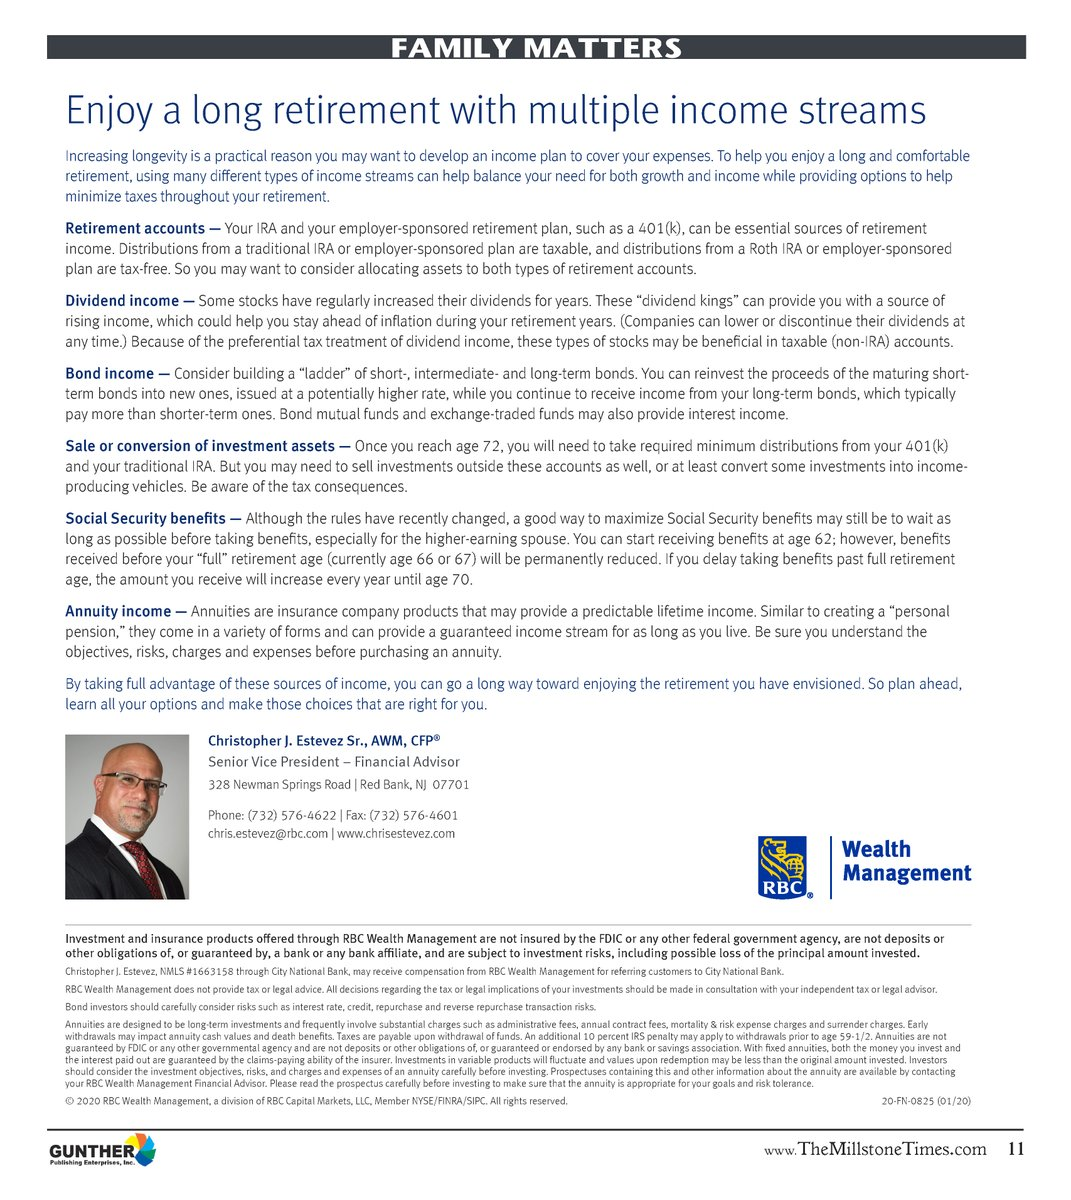 Enjoy a long retirement with tips from @RBCwealth 's article in The Millstone Times, http://ow.ly/6ziC50ysunV . For additional information on how multiple income streams can bolster your second life, visit http://www.ChrisEstevez.com  #retirement #investments #finances #SecondLifepic.twitter.com/ivA5zLtUEN